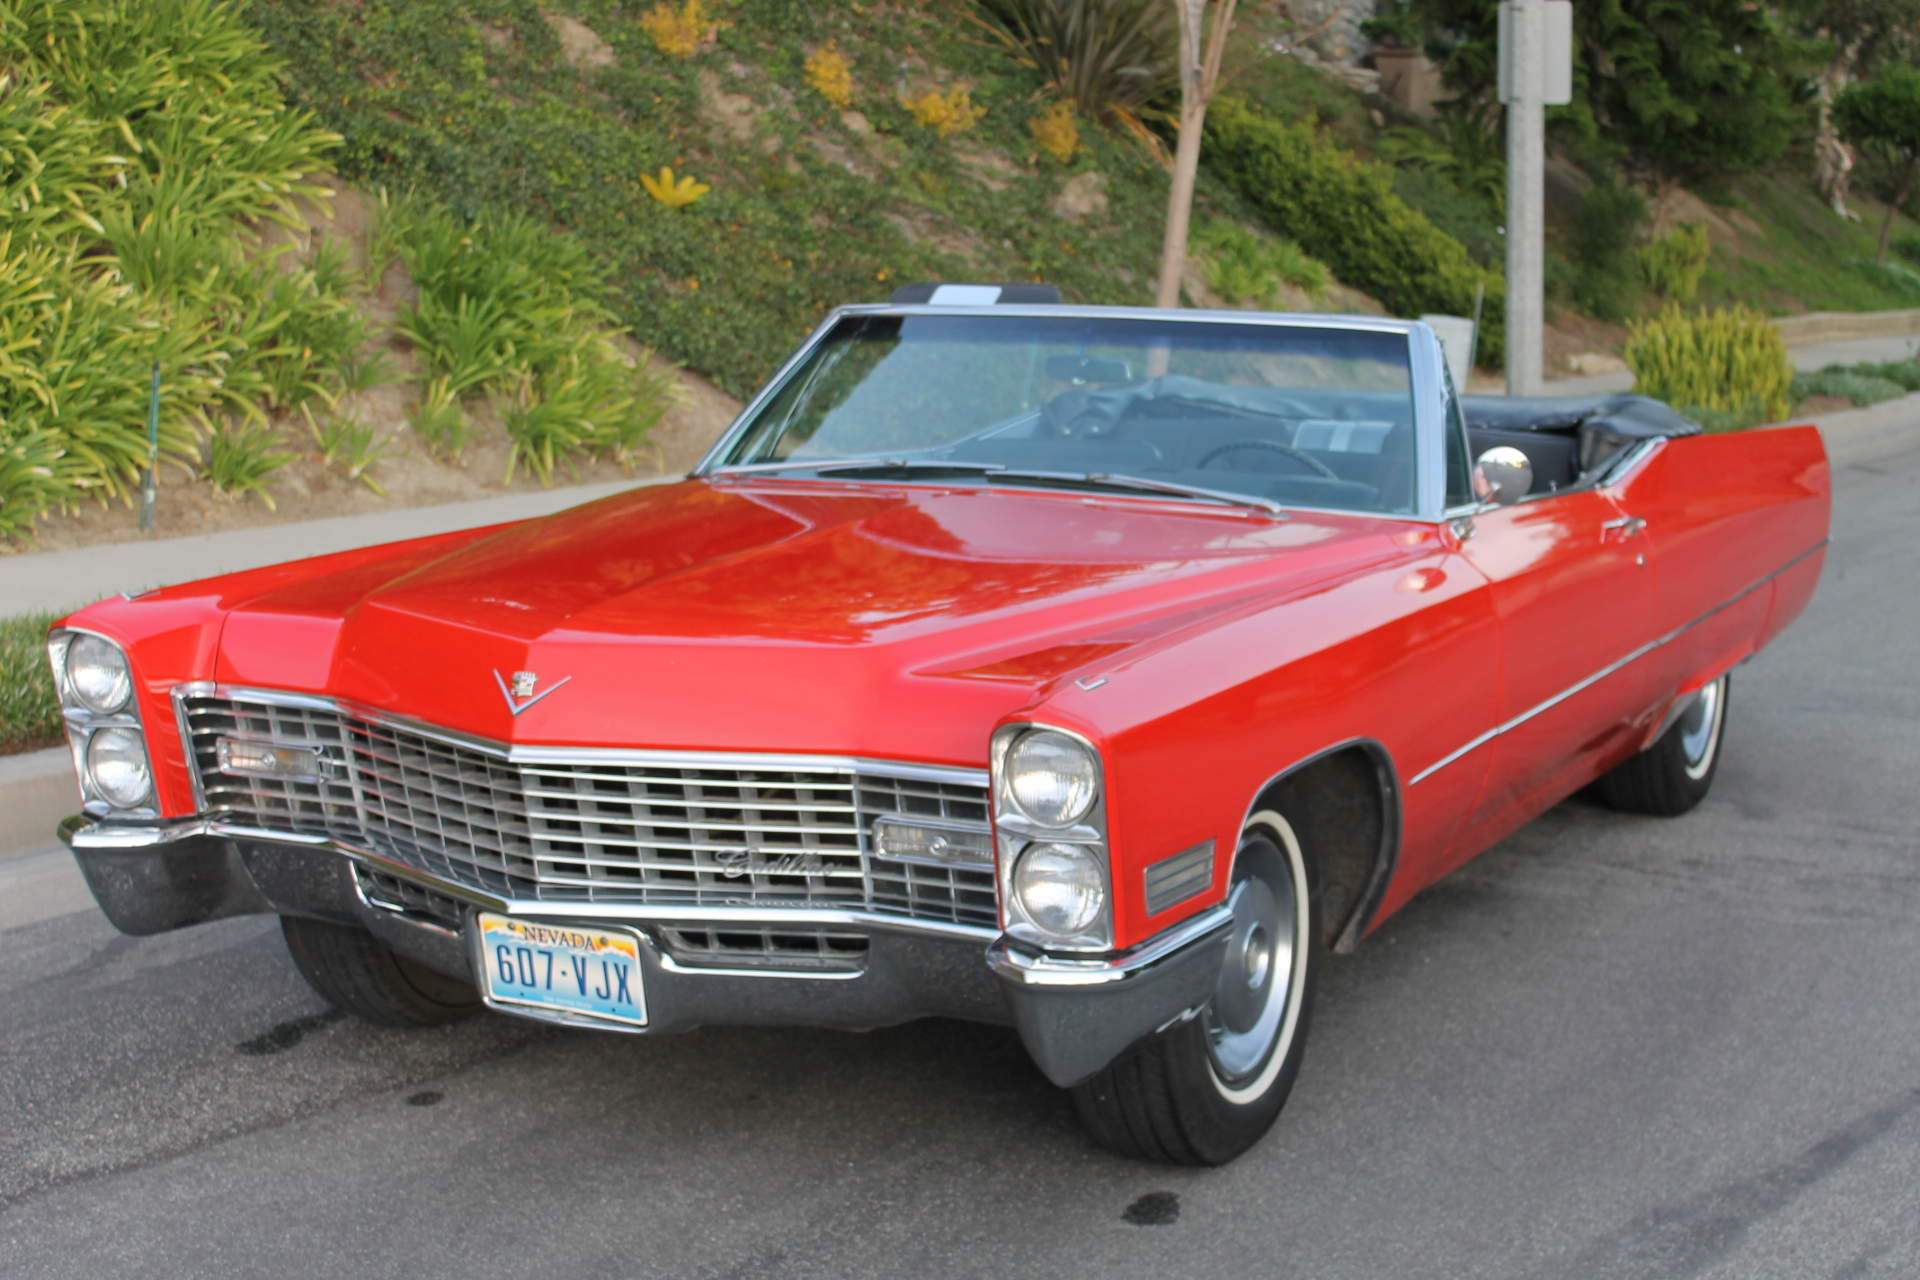 1967 Cadillac Convertible | The Vault Classic Cars